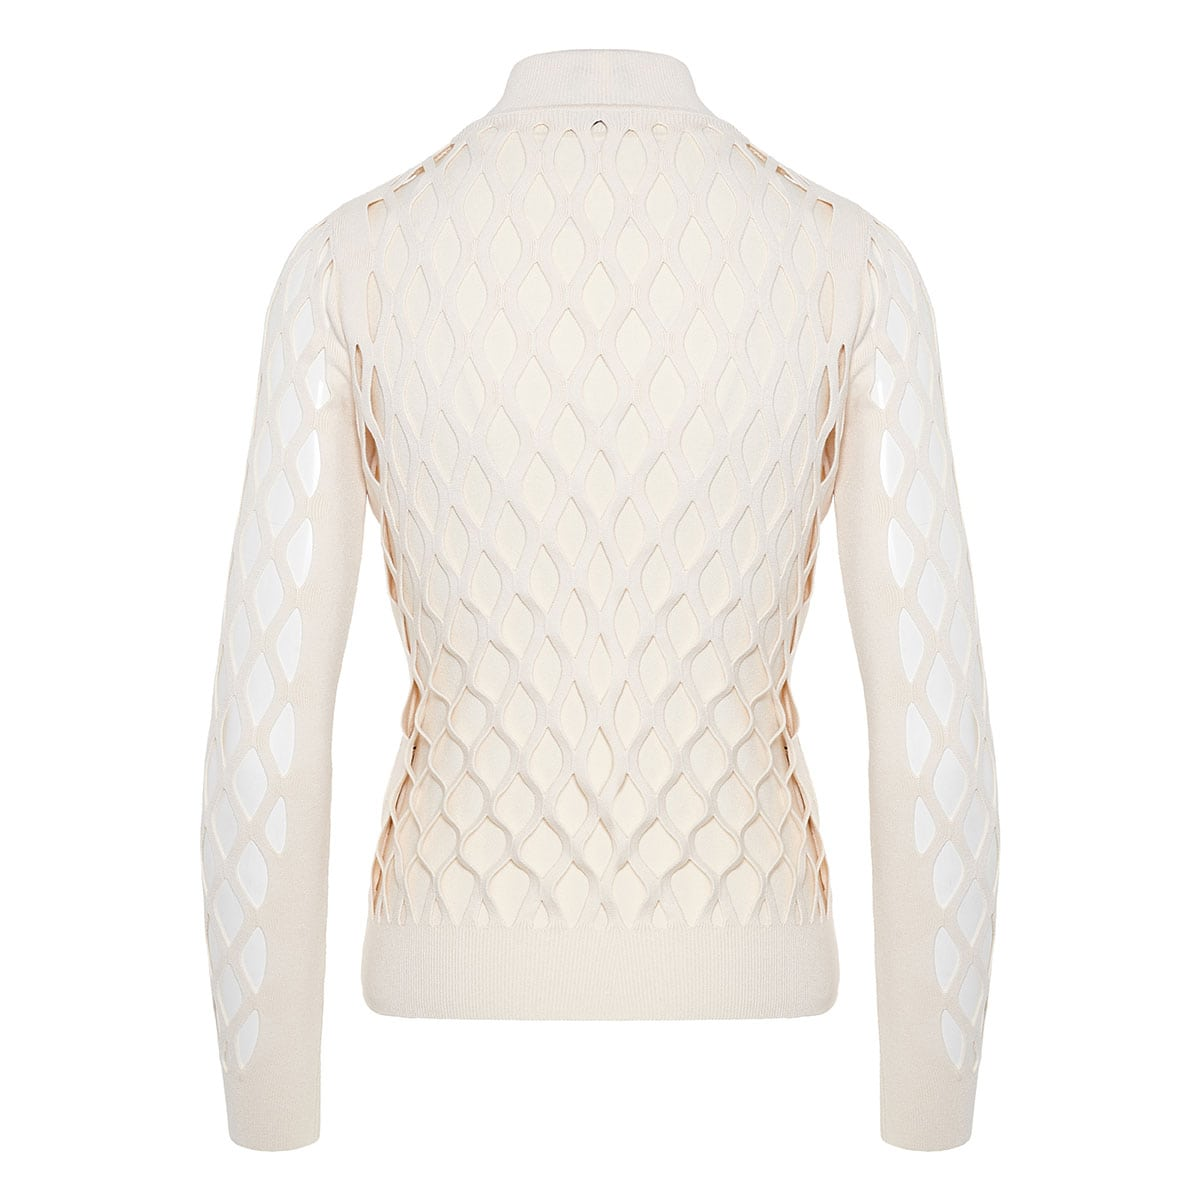 Mesh-paneled knitted blouseMesh-paneled knitted blouse